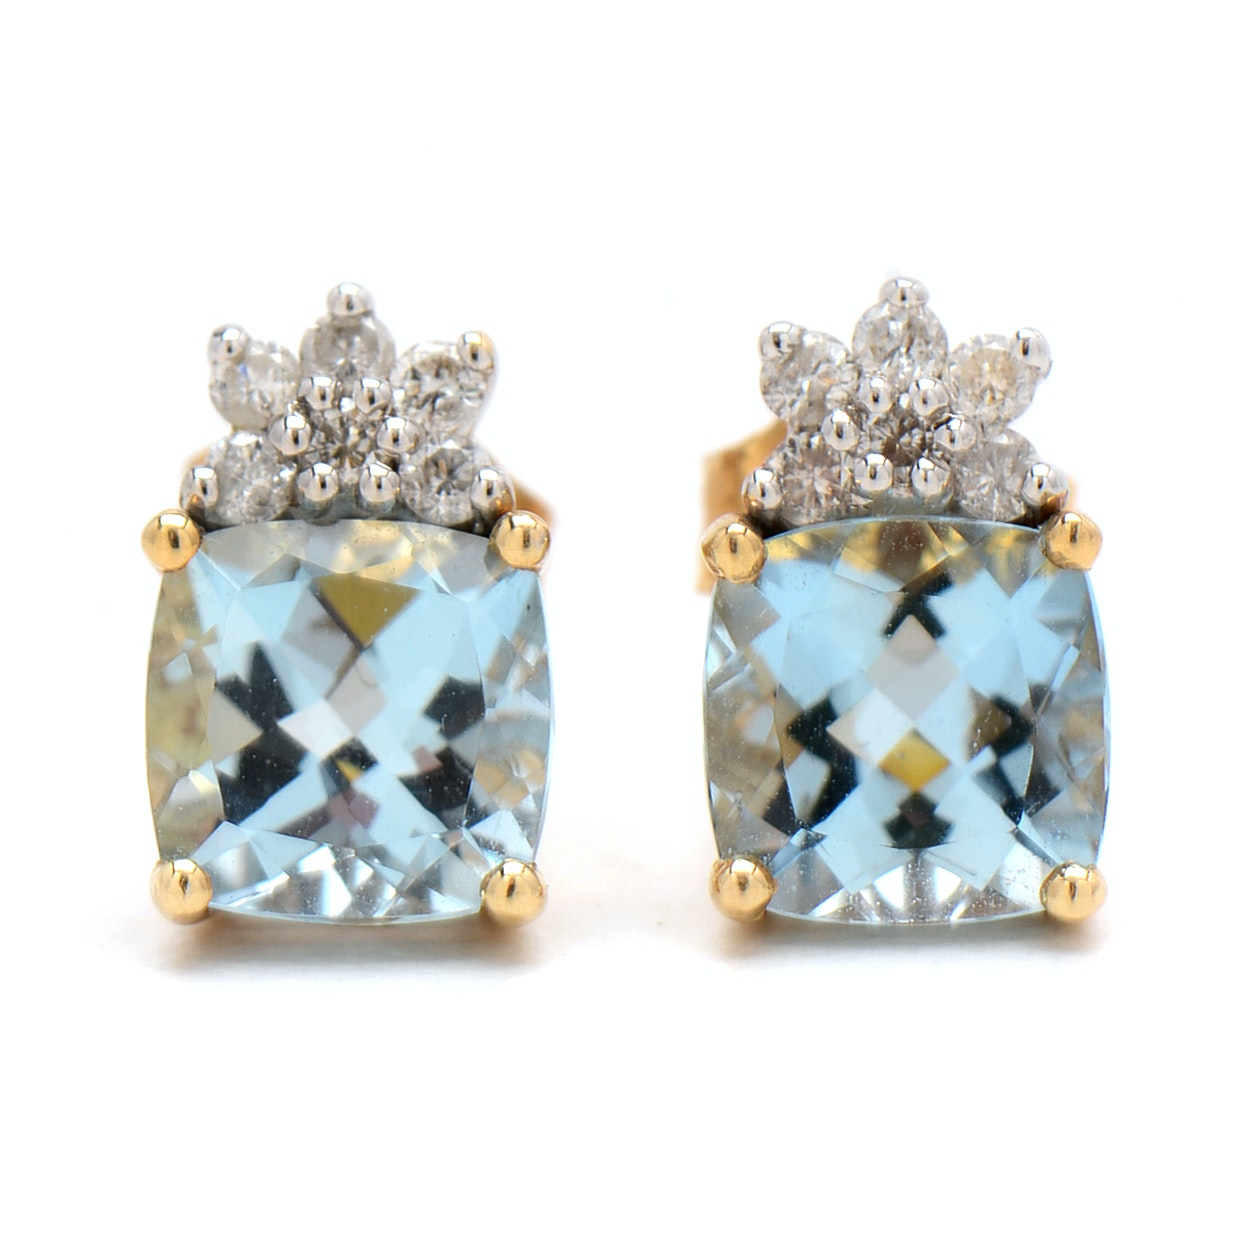 Pair of 14K Yellow Gold Aquamarine and Diamond Stud Earrings